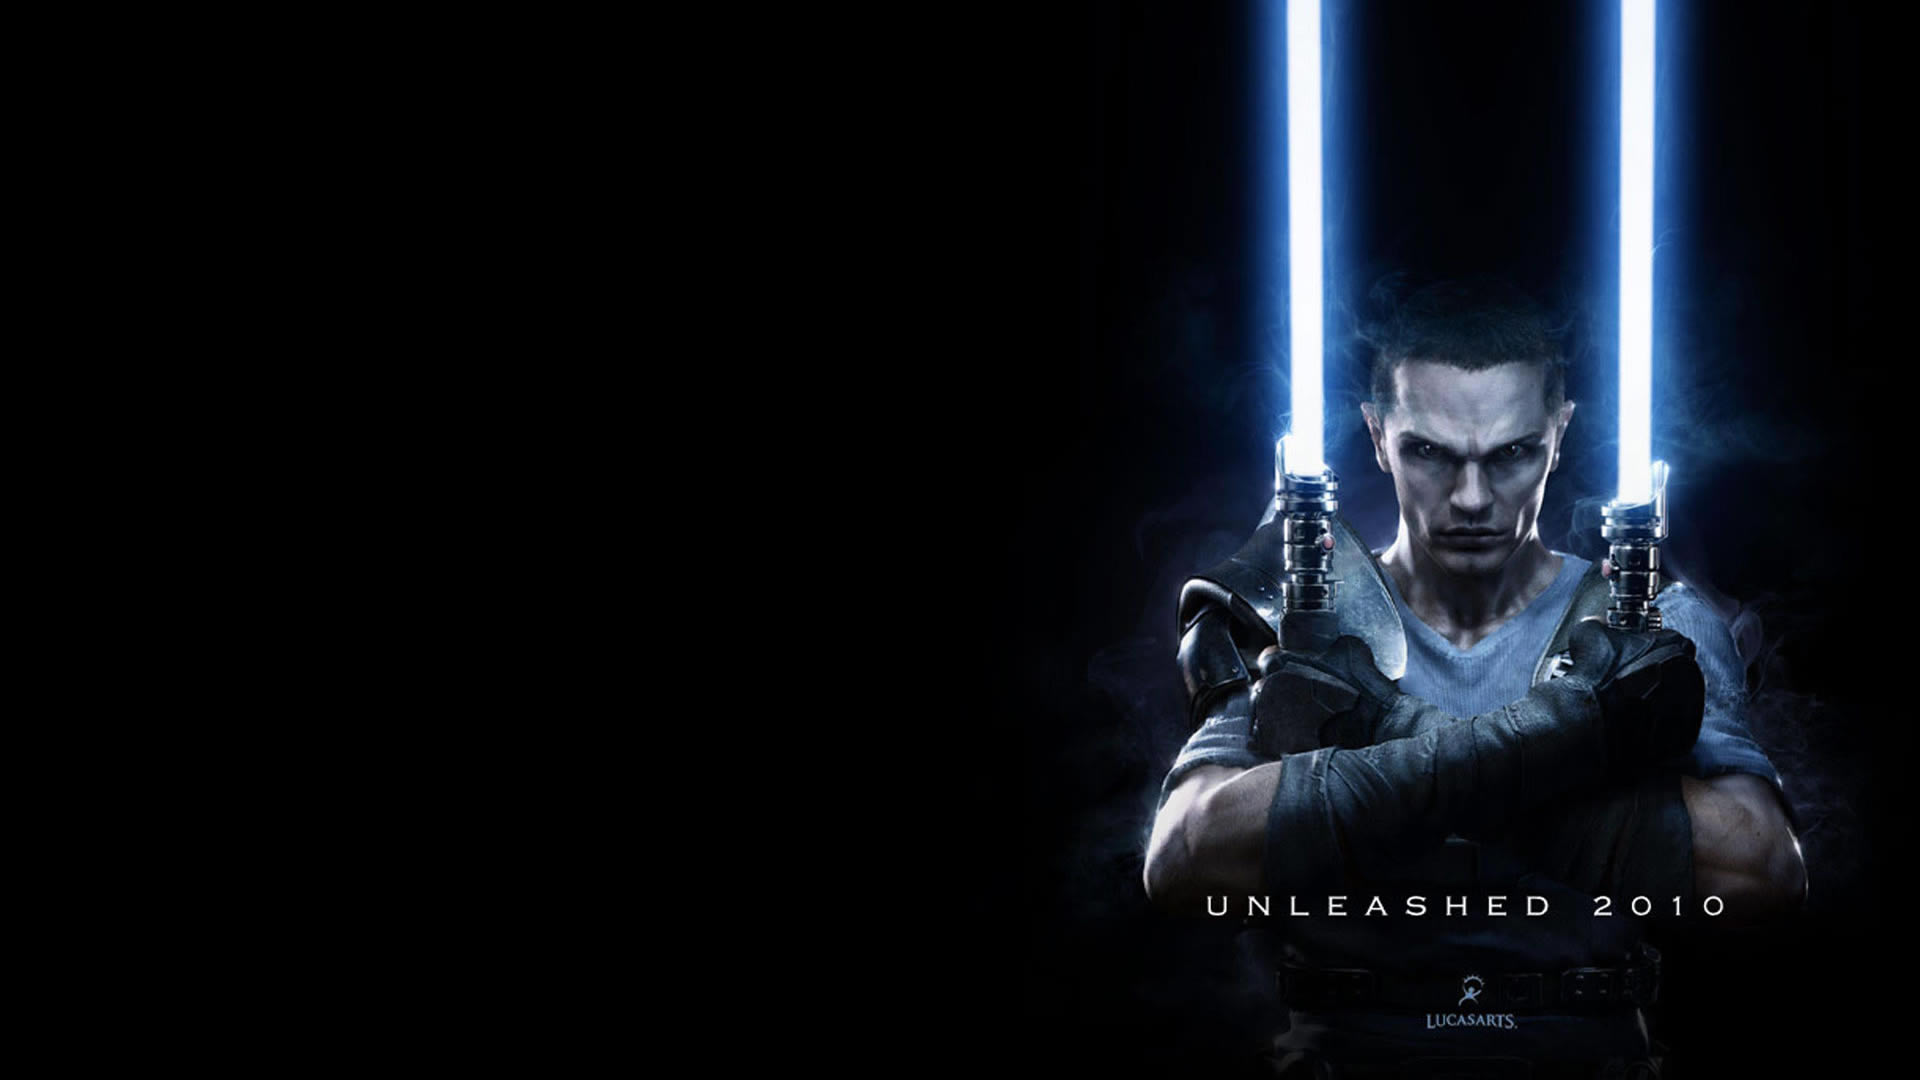 Epic Star Wars Wallpapers HD 1920x1080